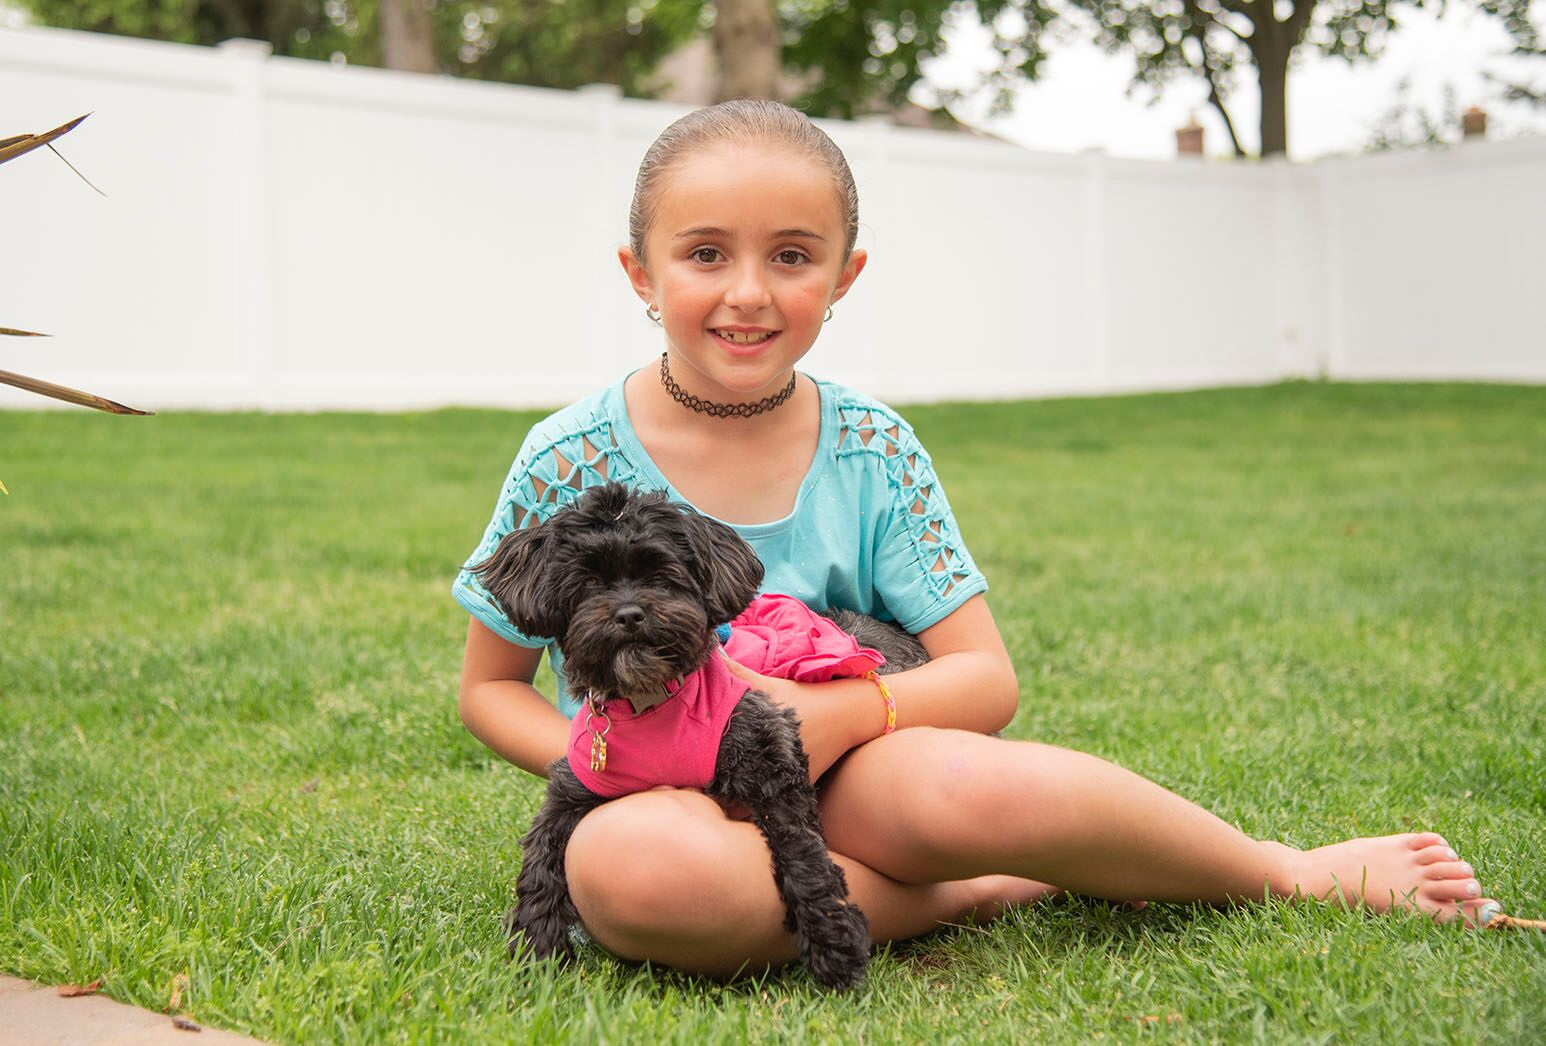 Young girl in a blue top sitting on the grass with a small black dog in front of a white fence.